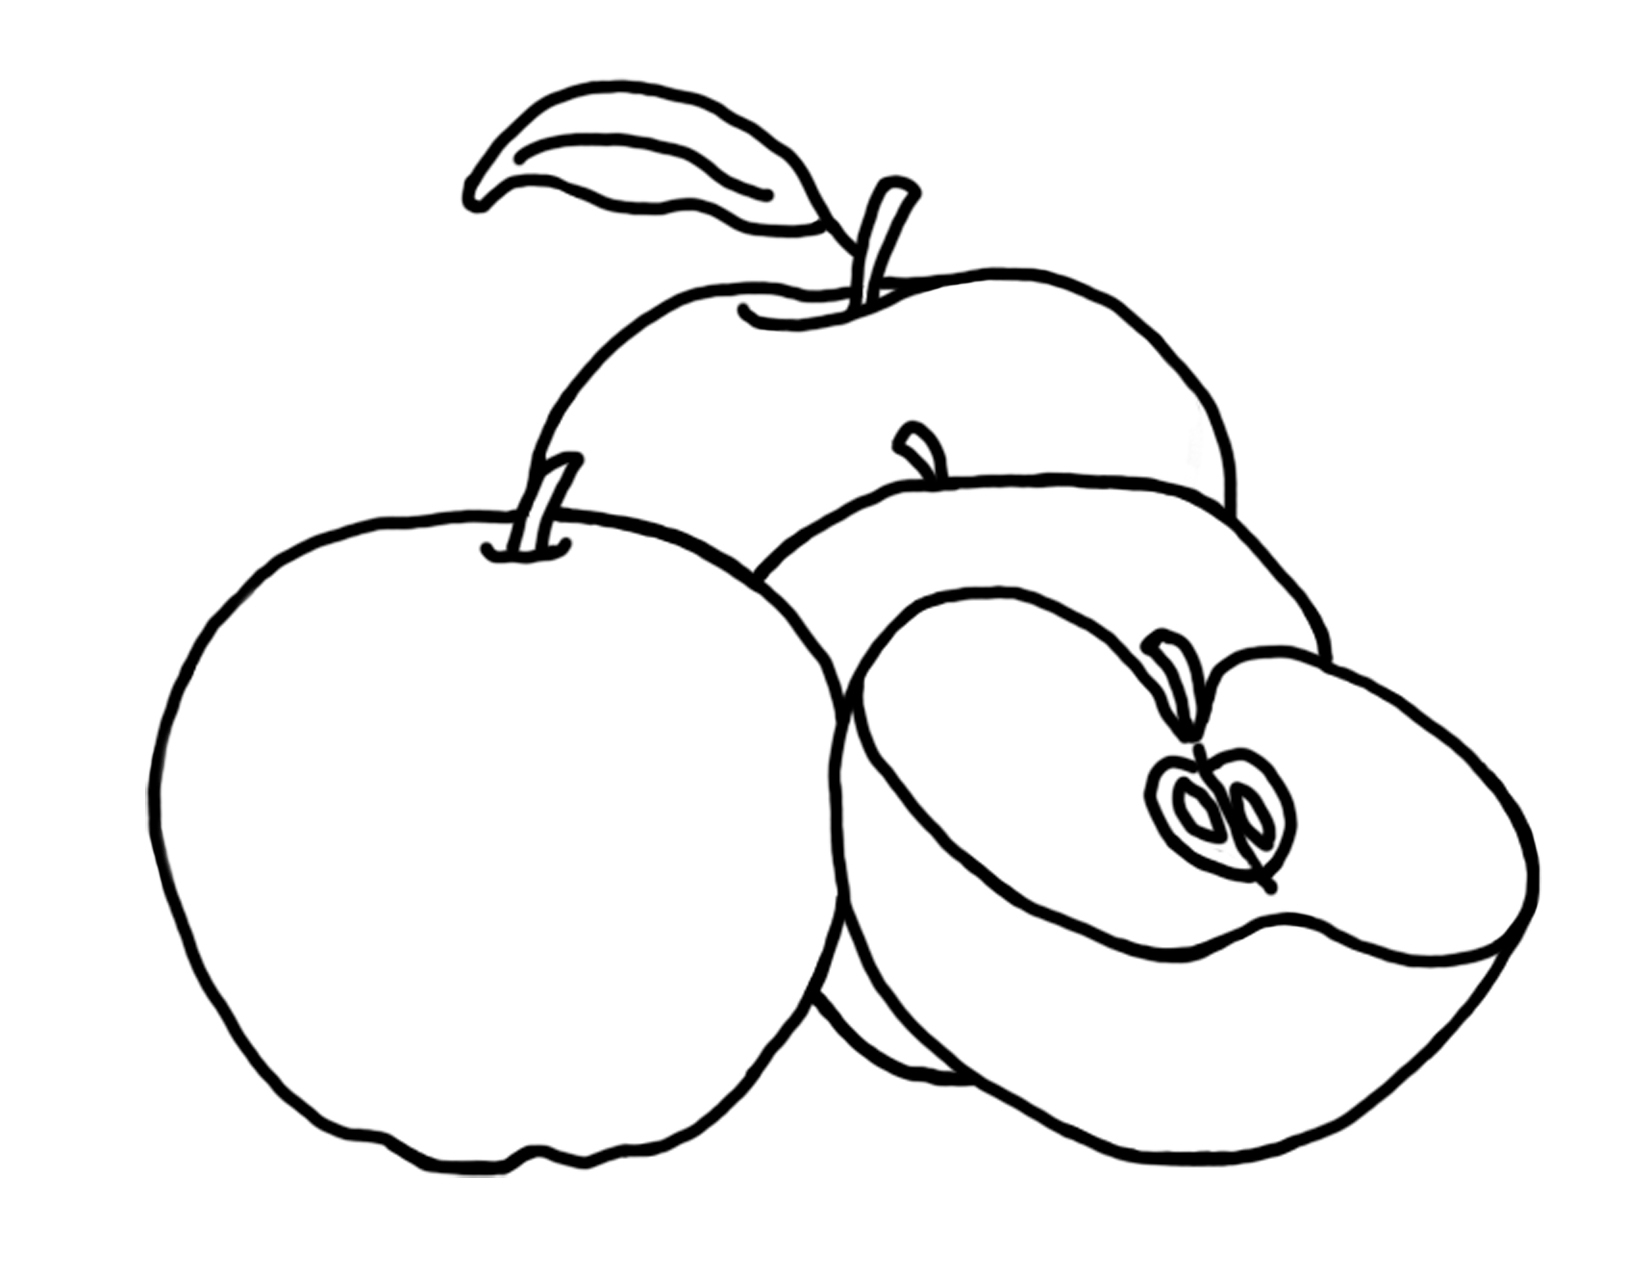 a is for apple coloring page - apple basket coloring page free printable apple coloring pages for kids